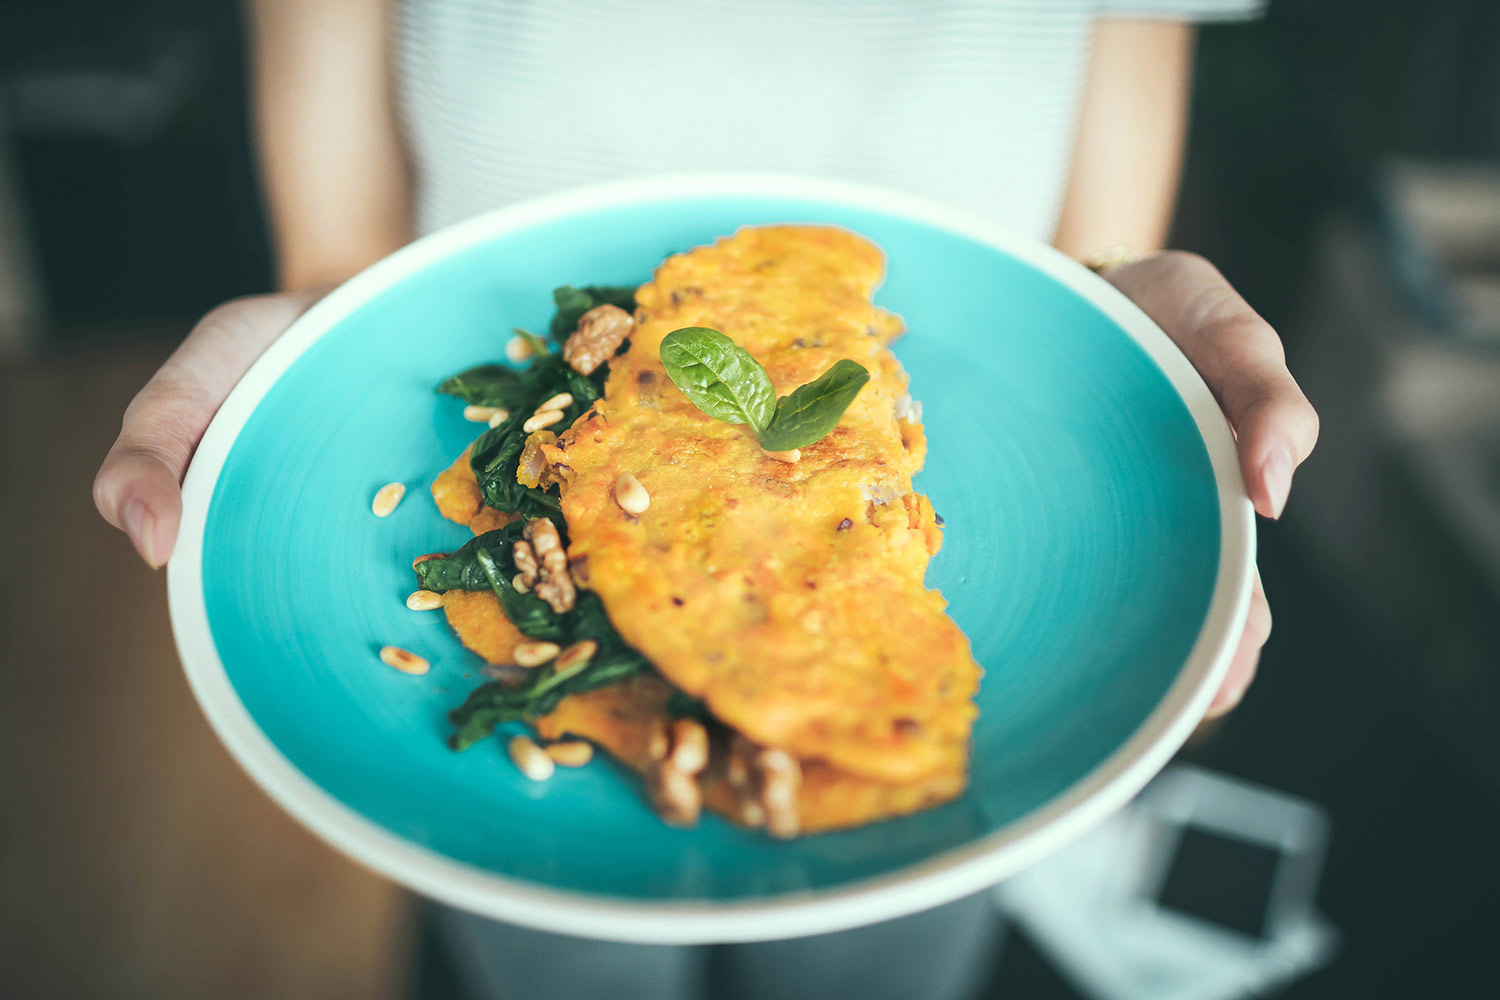 Whole-Body-Beautiful---Chickpea-Eggless-Omelet.png